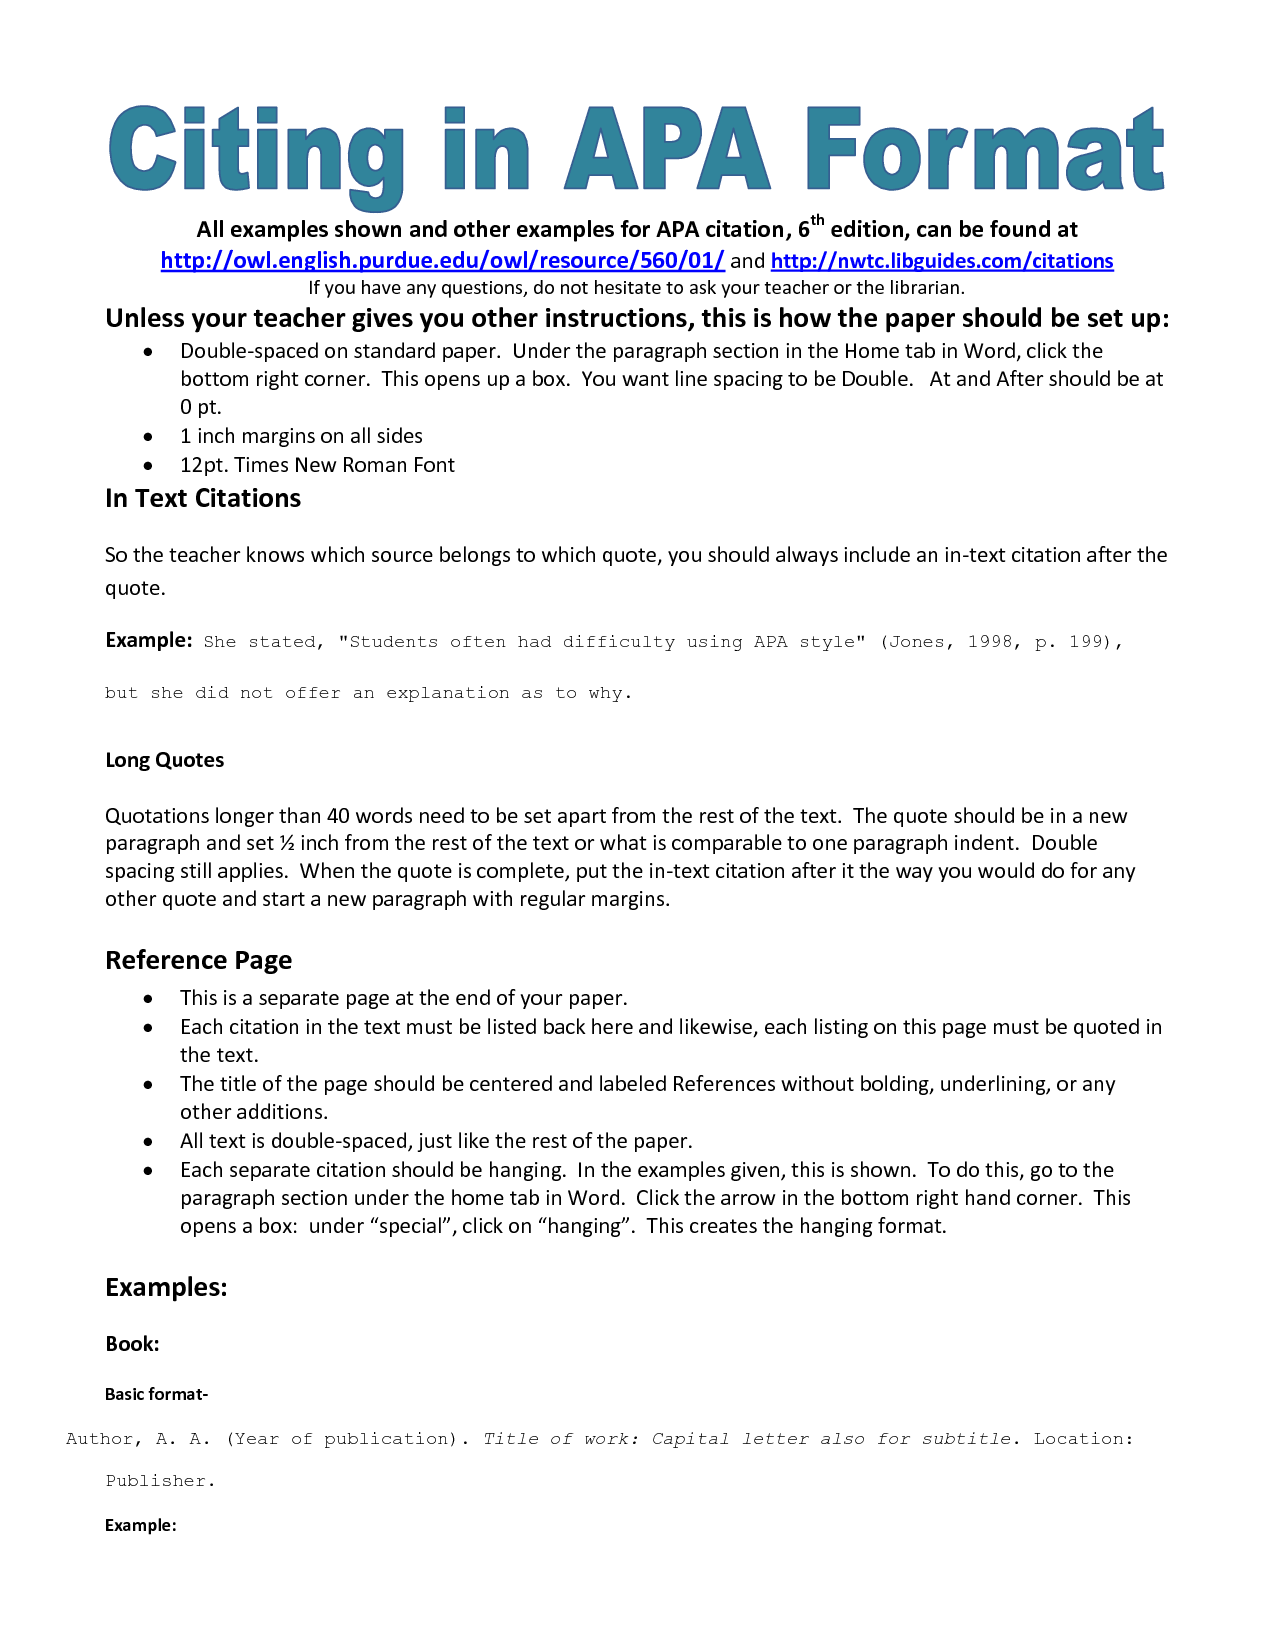 008 Research Paper Citing Sources In Paragraph Impressive Apa How To Cite A Style Full